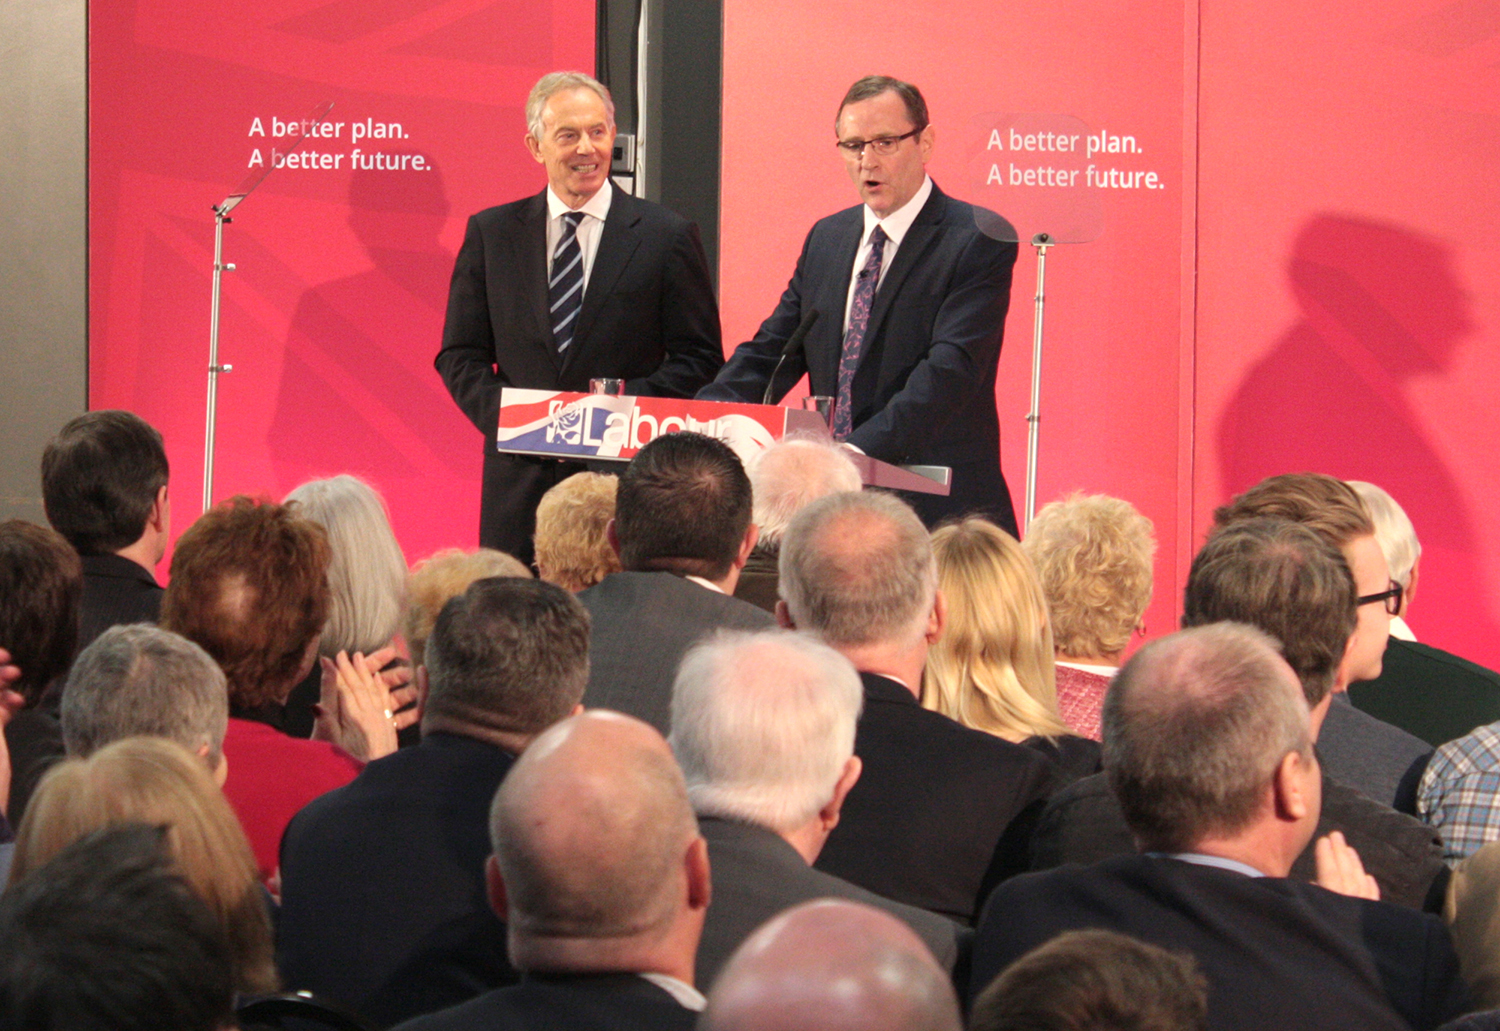 Tony Blair 100% Behind Labour Party Leader